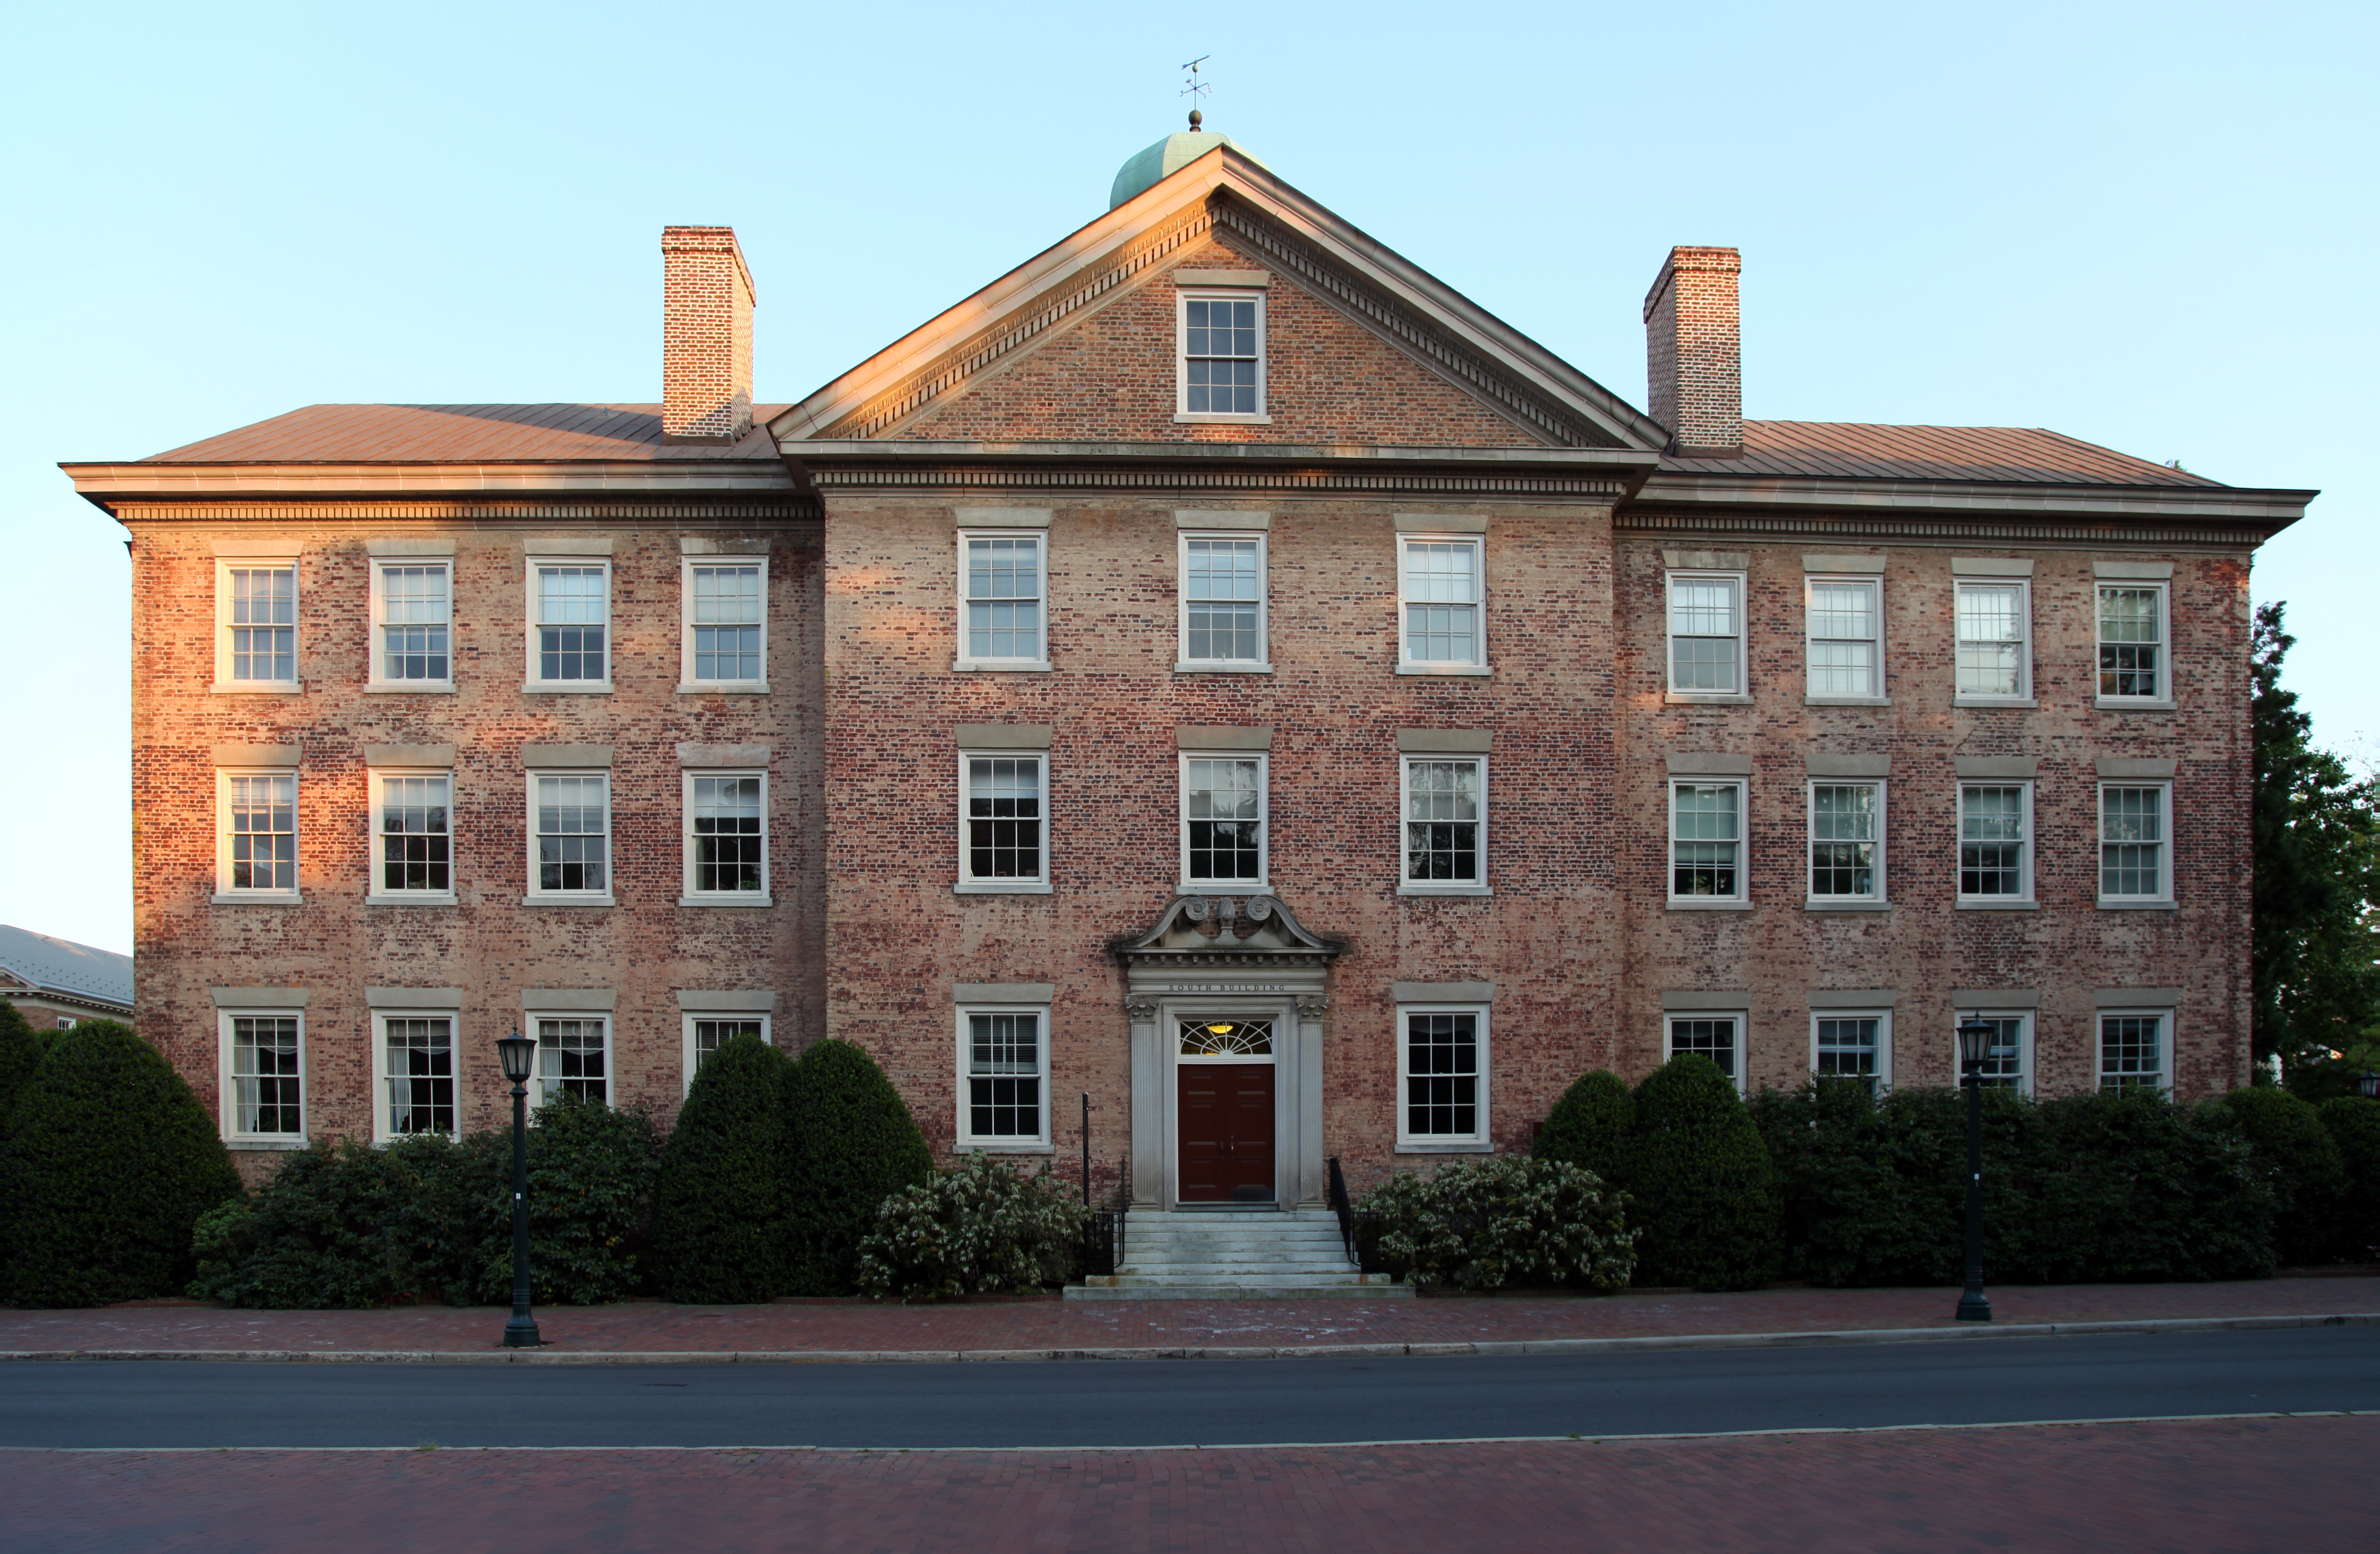 File:South Building facing Cameron Ave.jpg - Wikimedia Commons